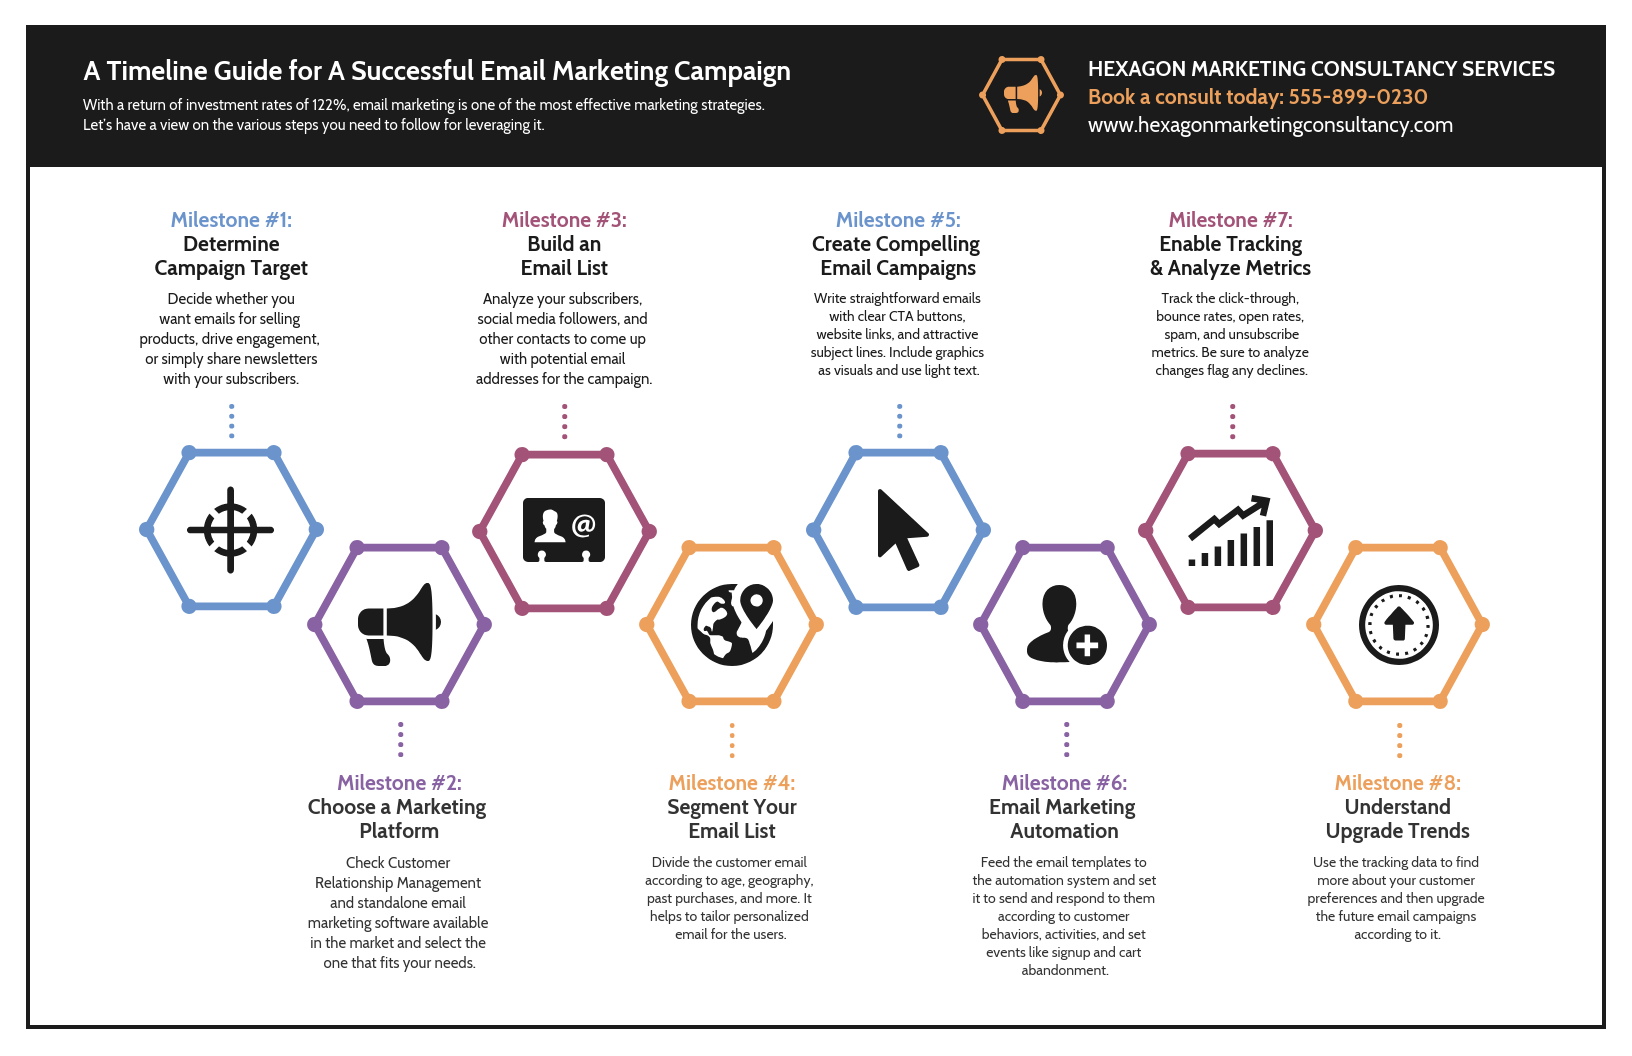 Marketing Consultant Campaign Timeline Infographic Template